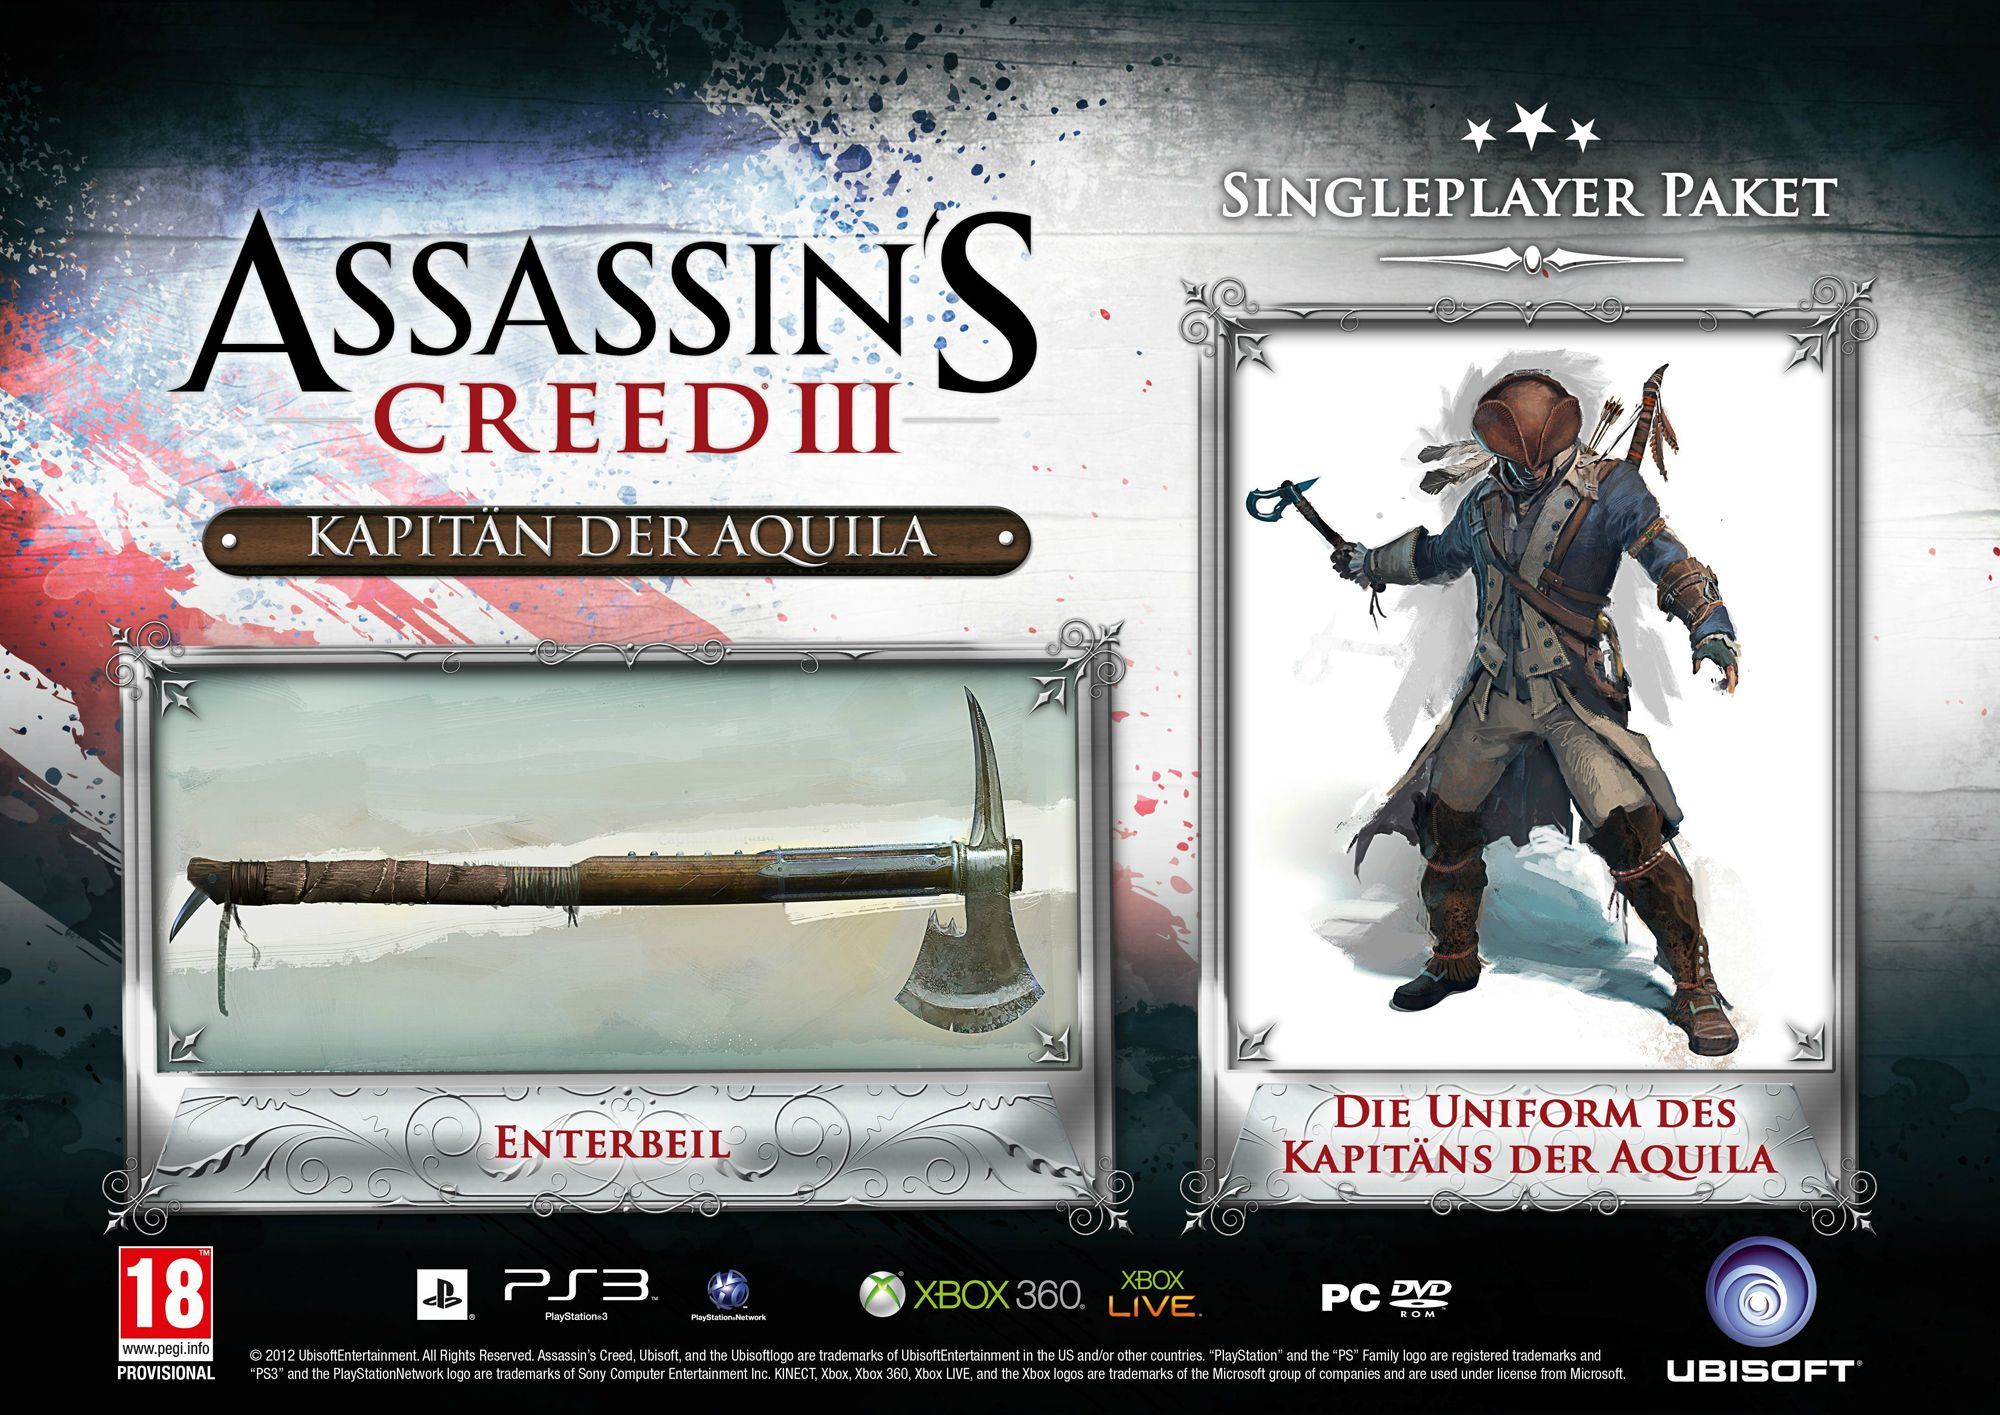 http://www.xboxygen.com/IMG/jpg/assassinscreed3_dlc_exclusif_preco_2.jpg